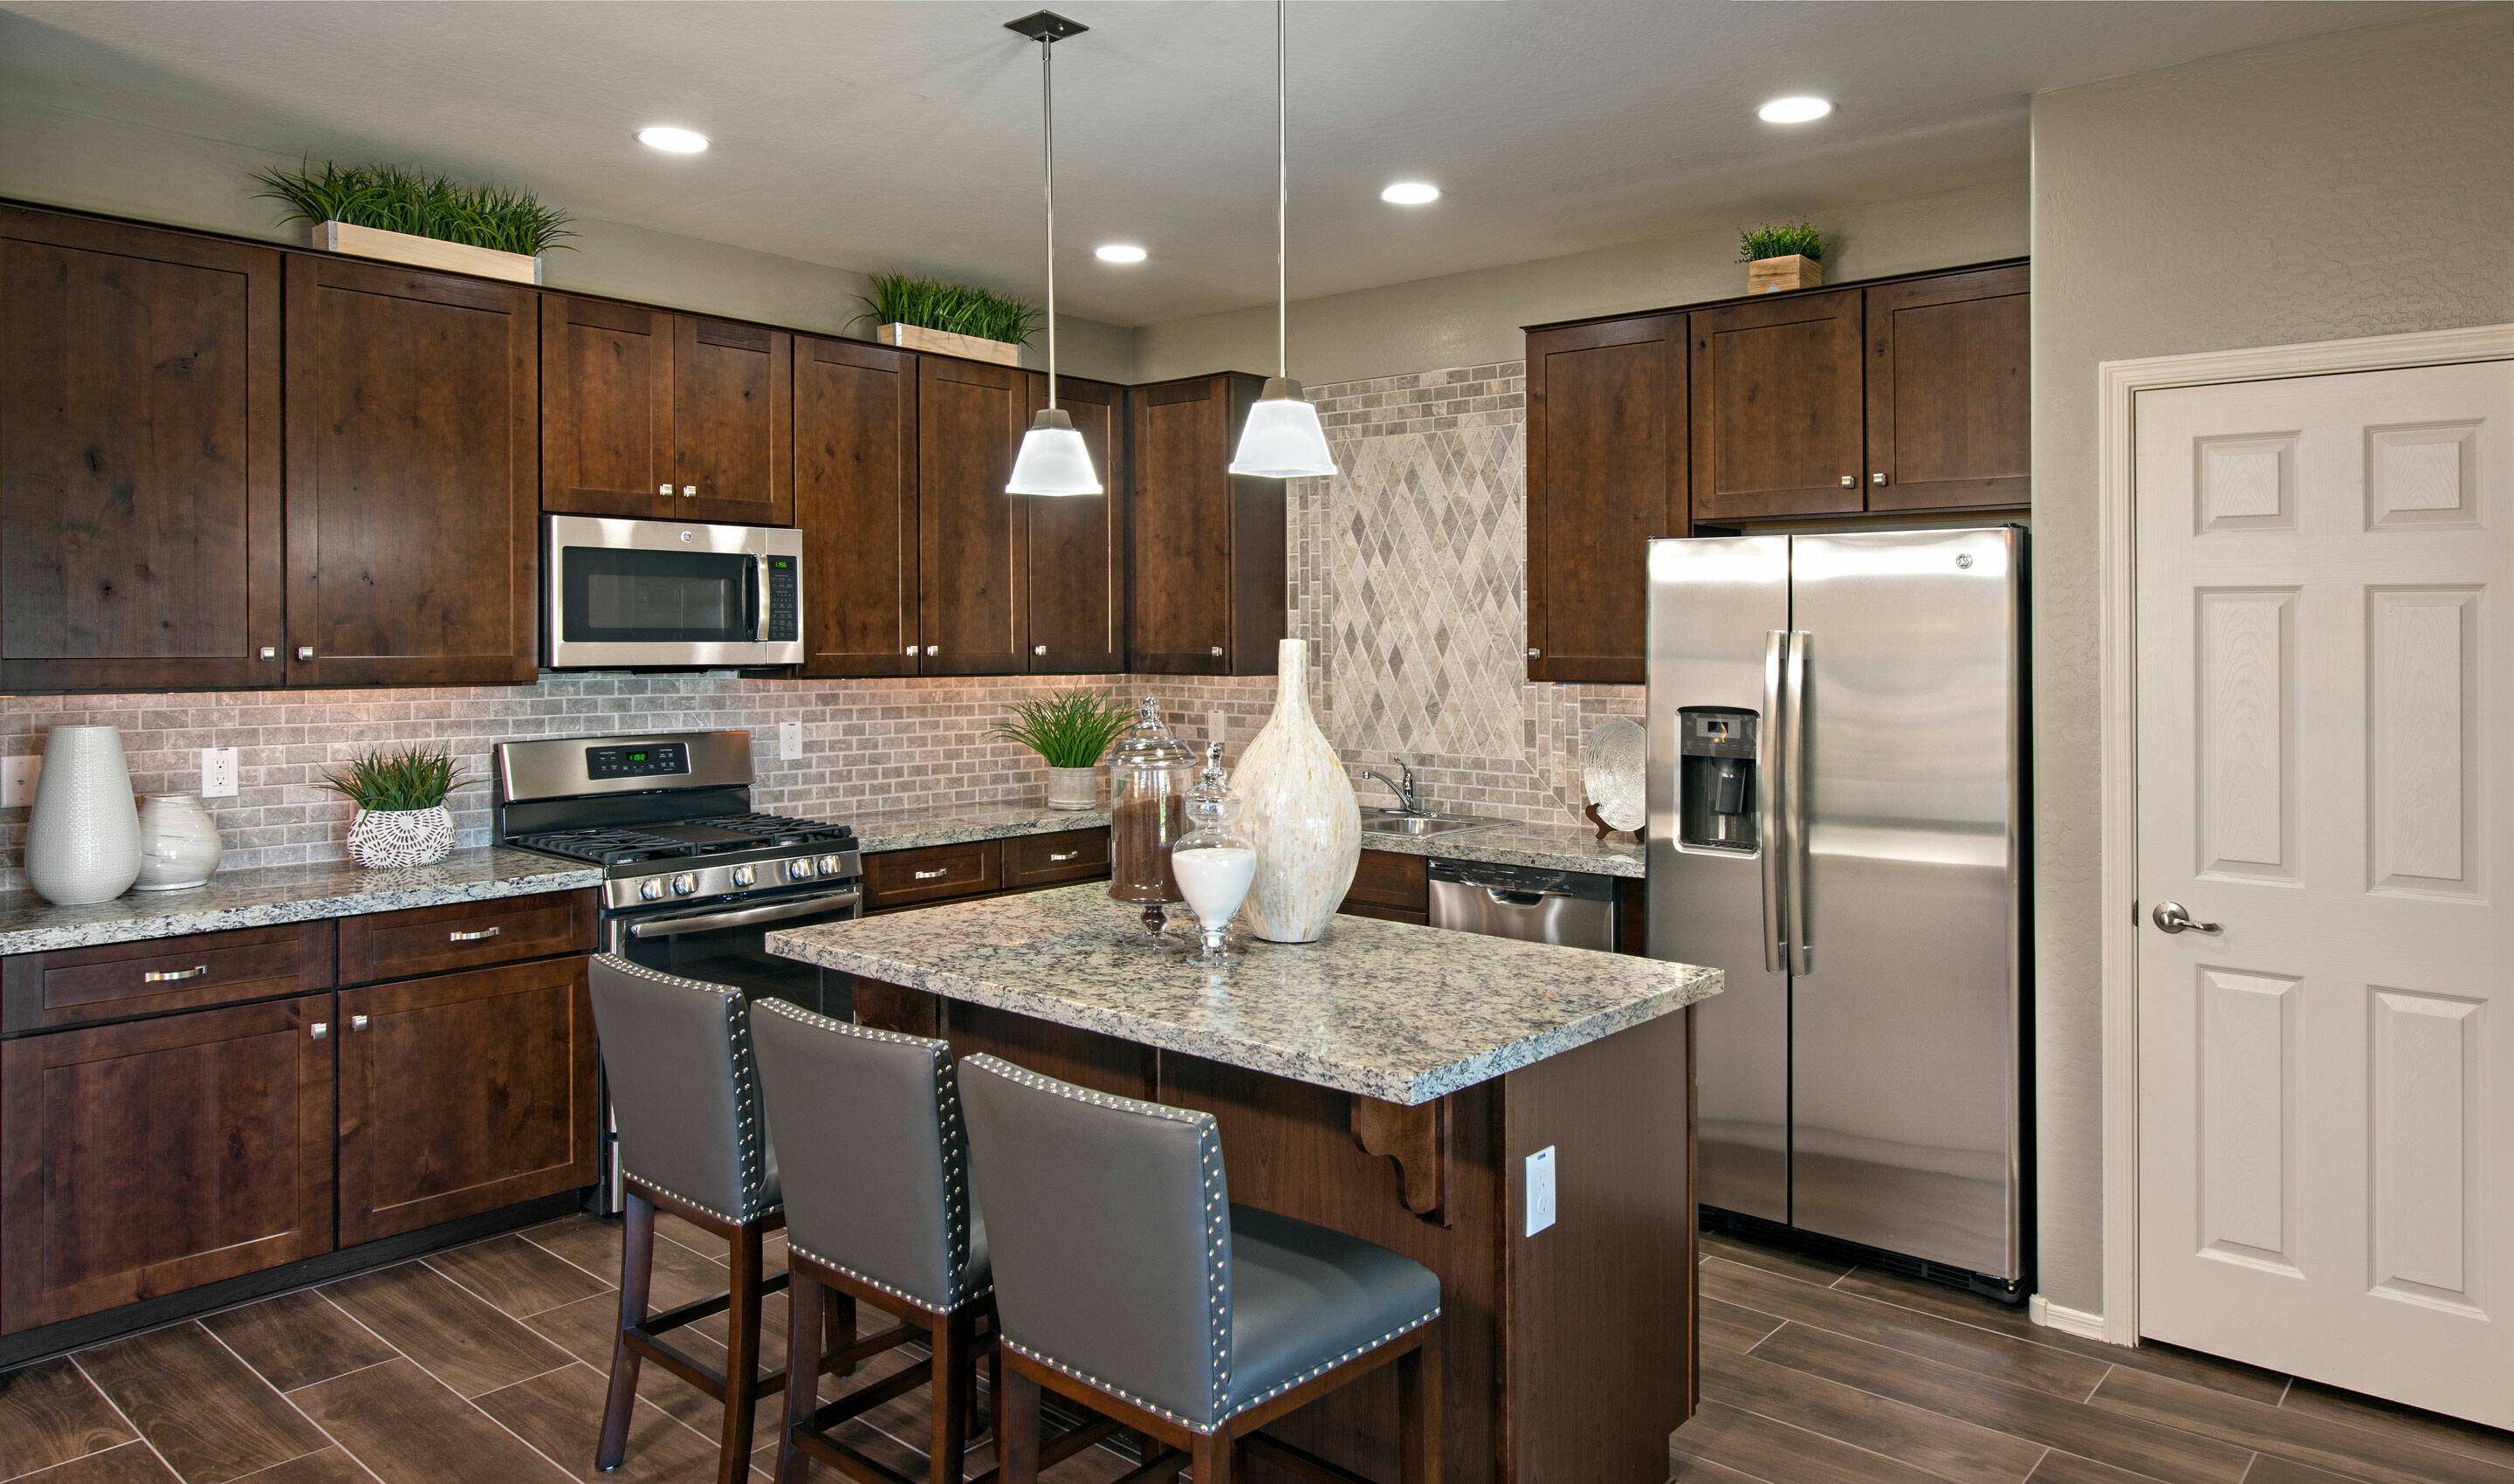 holiday kitchen new homes sienna hills aspot